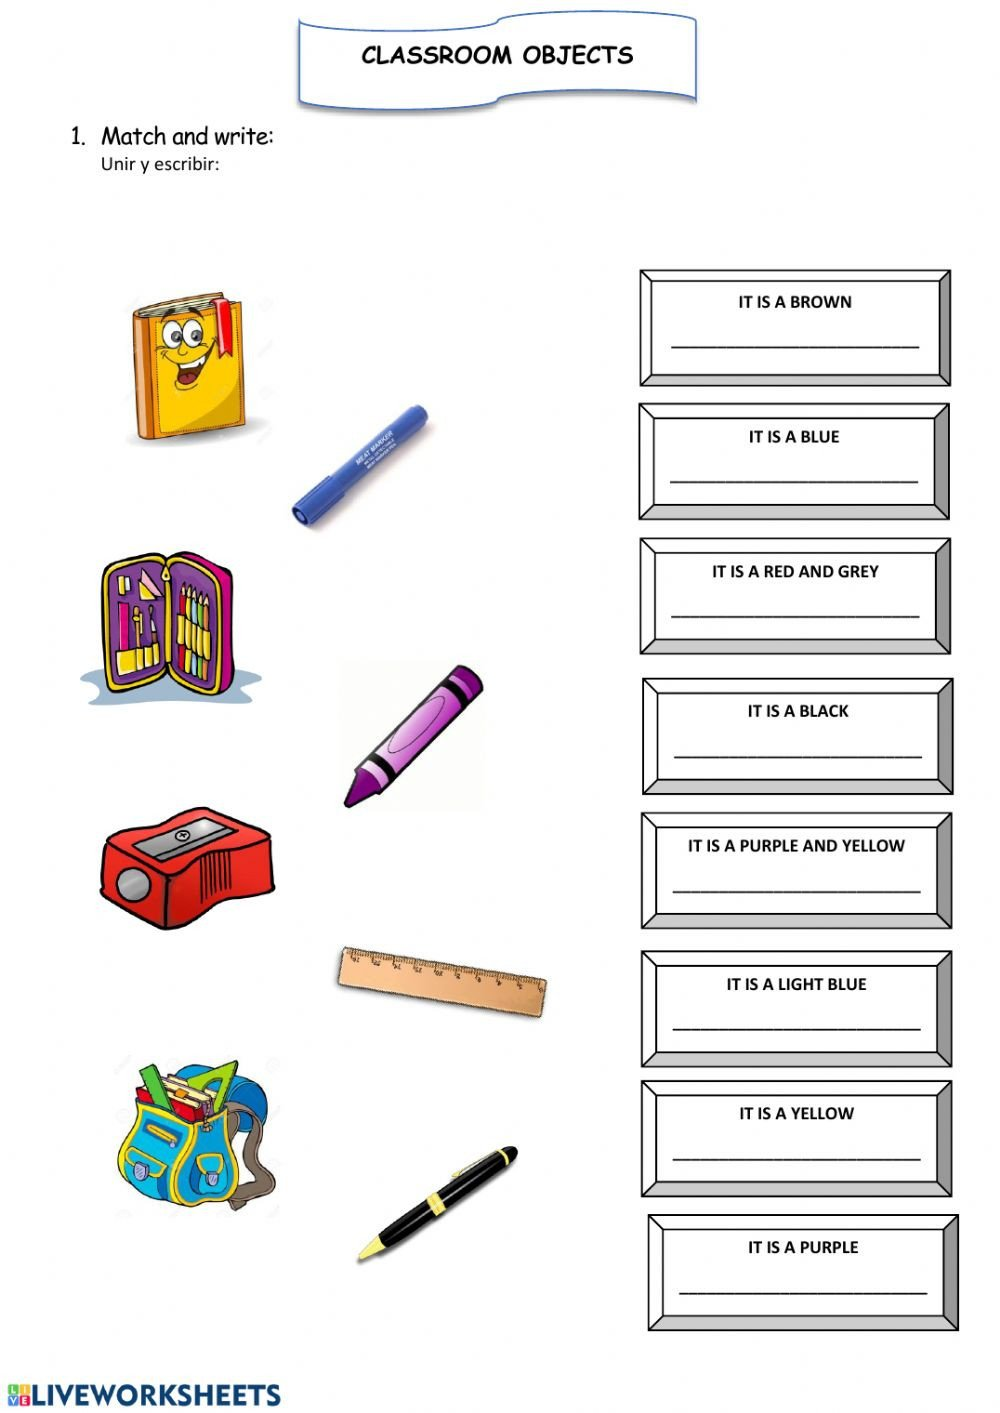 Classroom Objects Worksheets Pdf Classroom Objects 1 Exercise Pdf